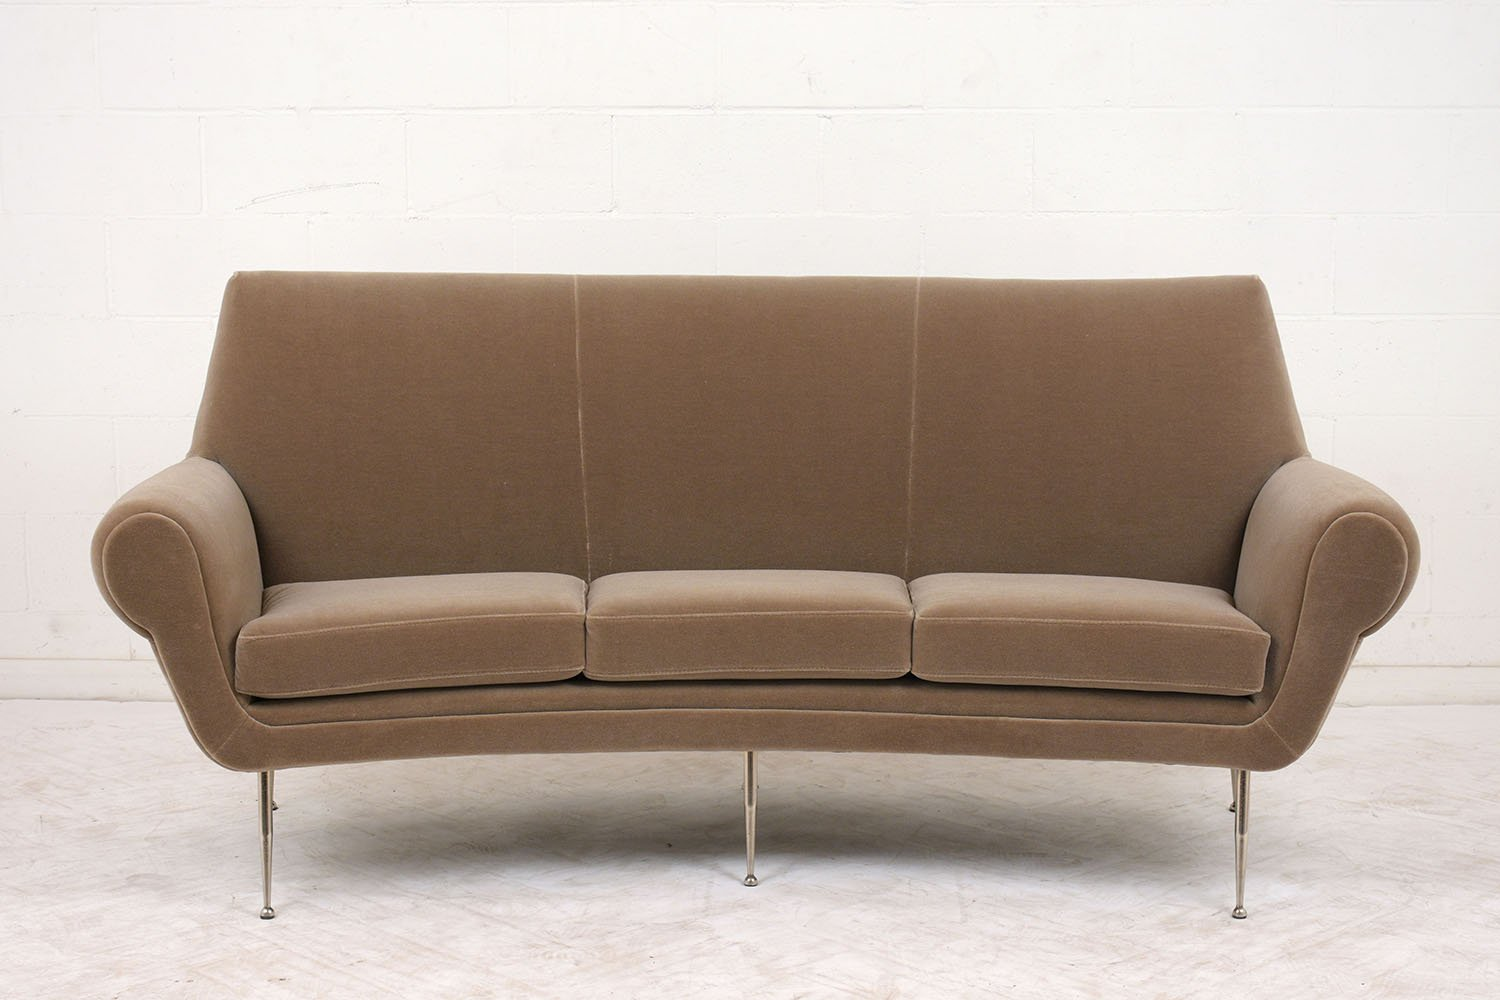 Italian Modern 3 Seater Curved Sofa 1960s